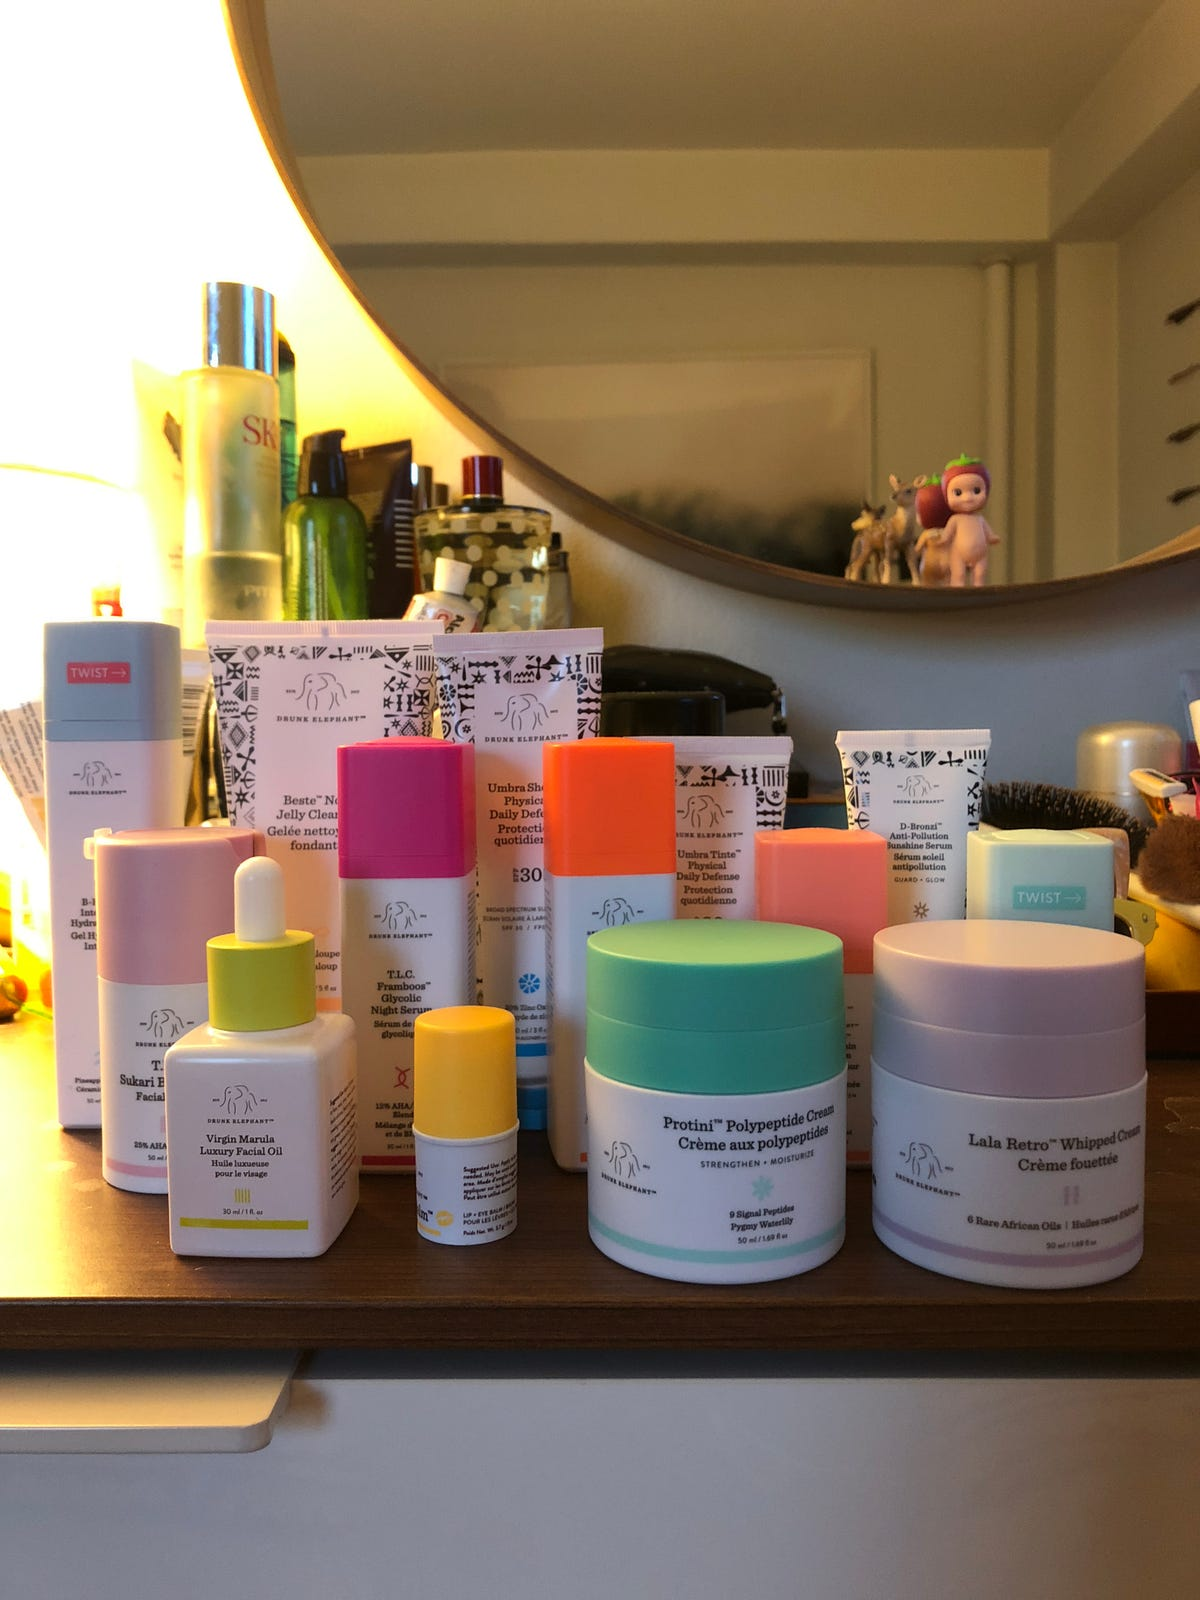 My Honest Review Of The Drunk Elephant Skin Care Line